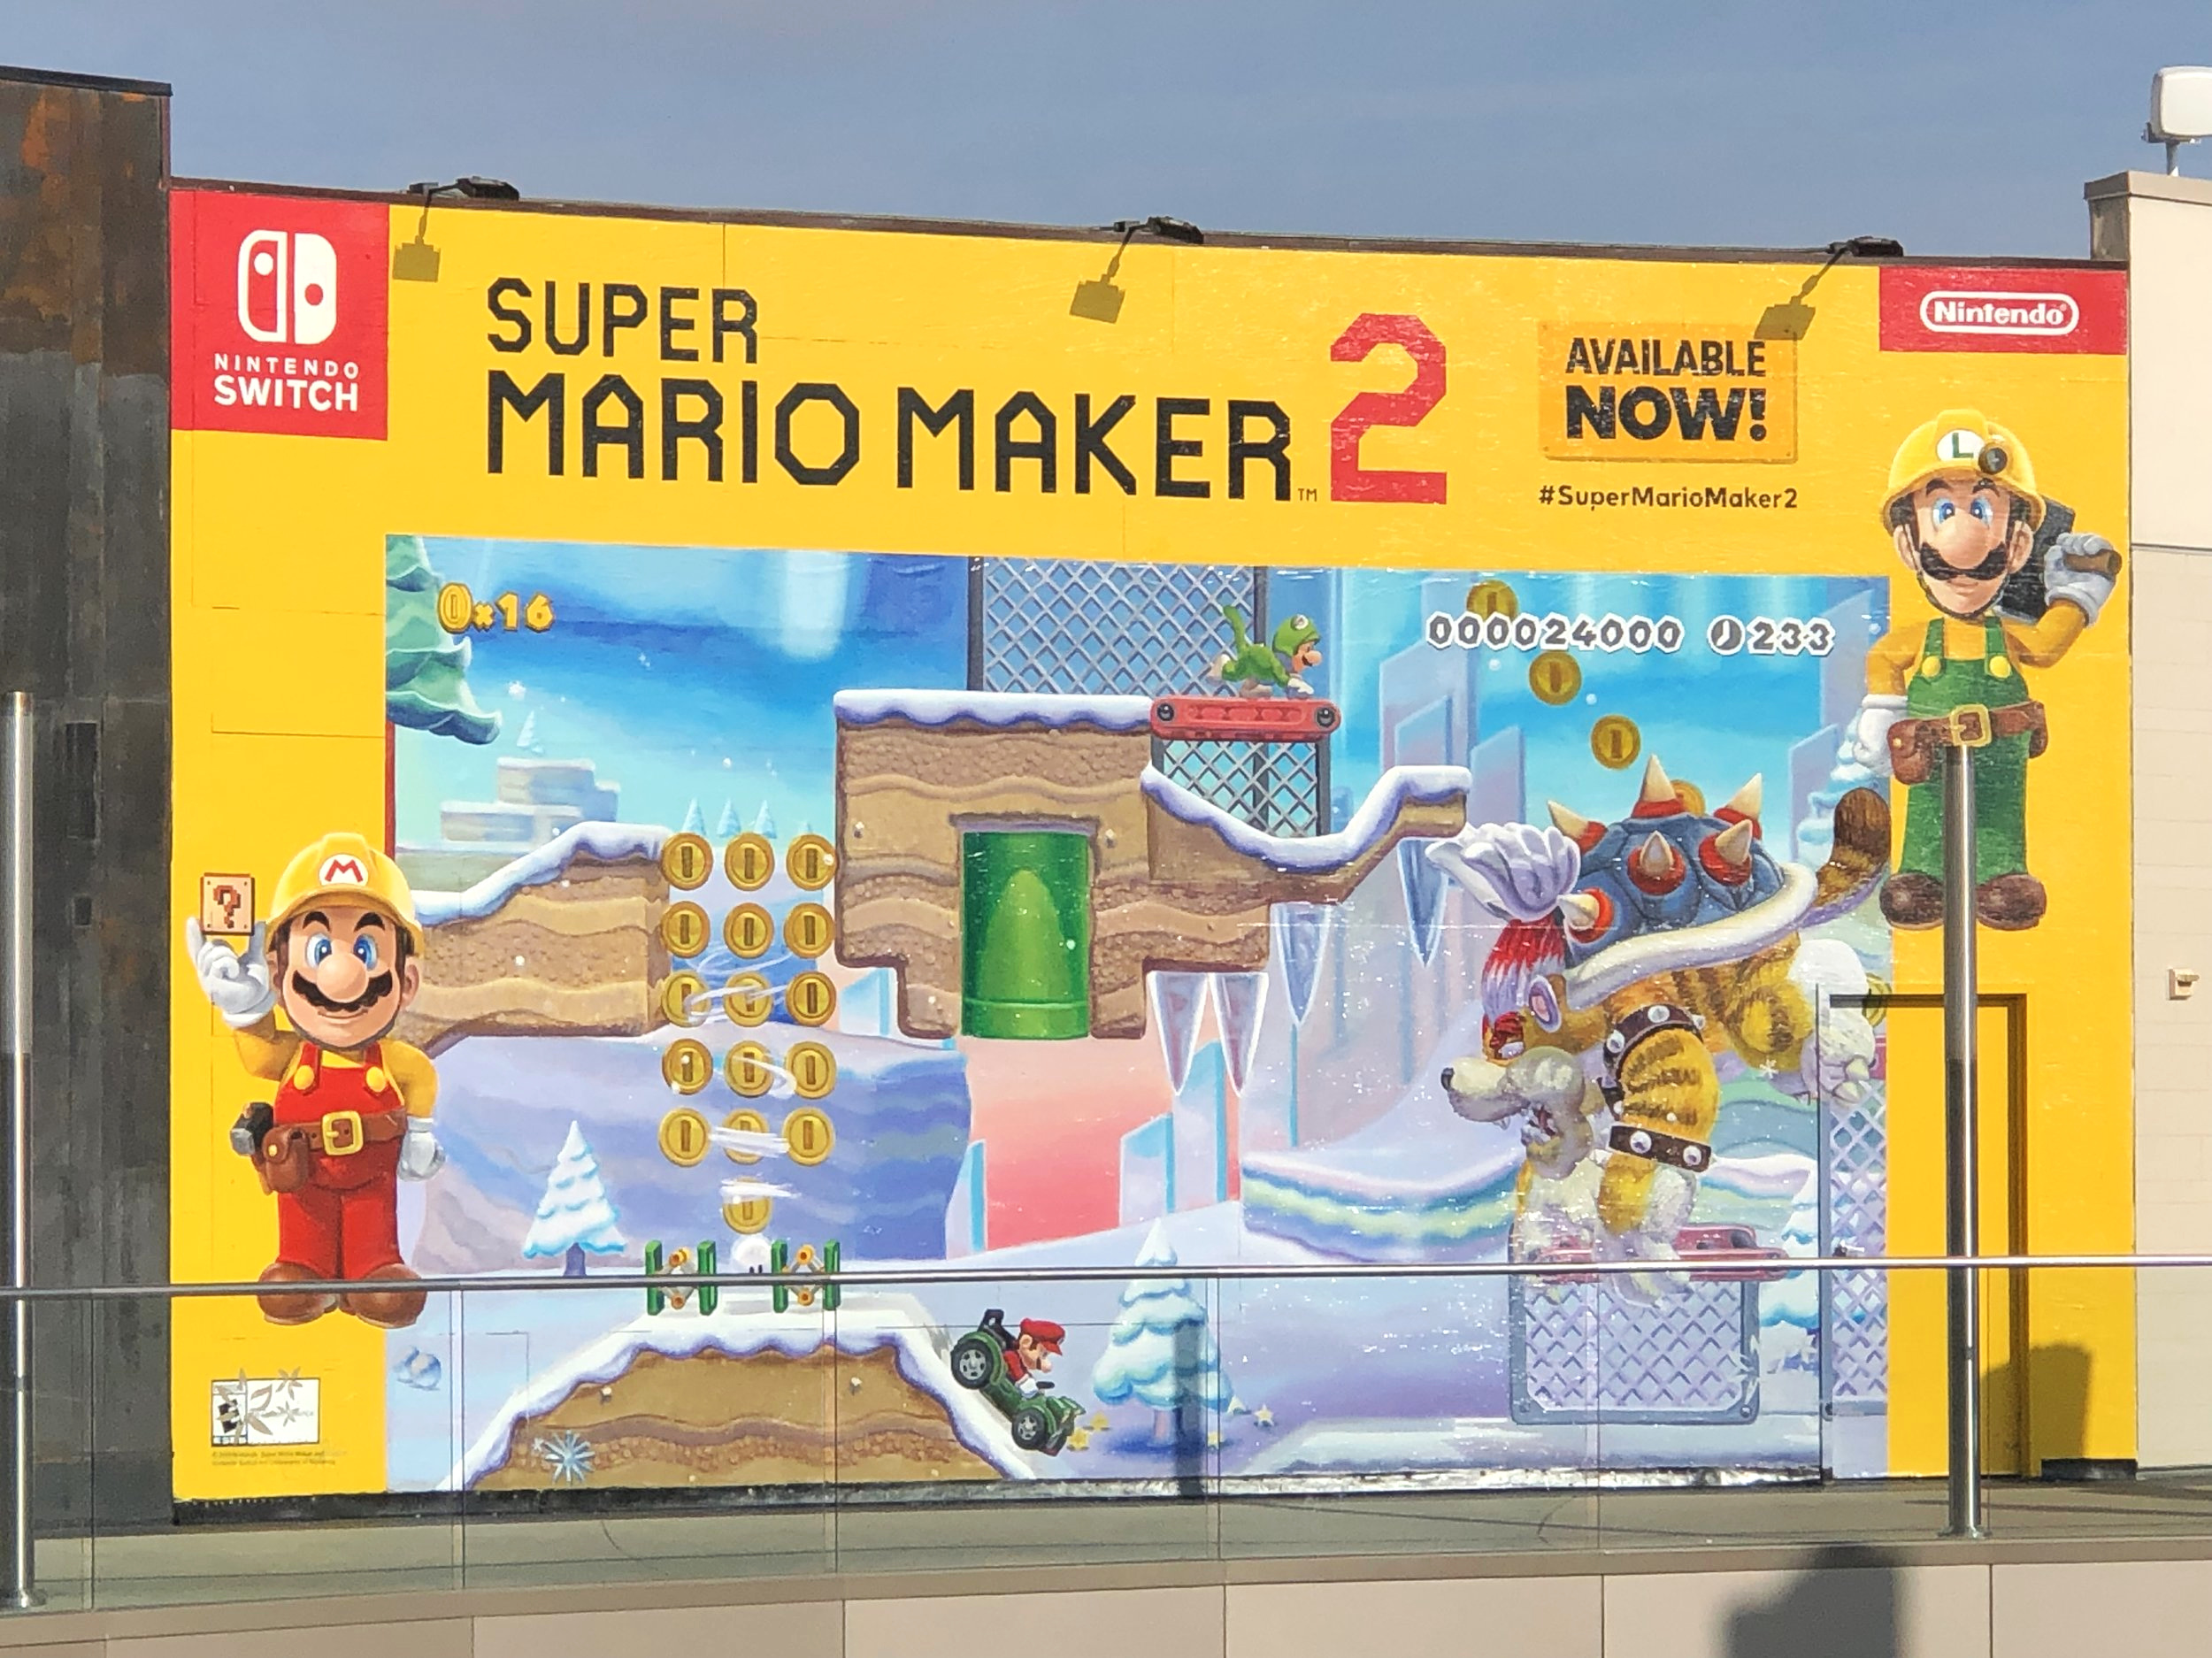 Super Mario Maker 2 - Week 5 @ Santa Monica Place Mall